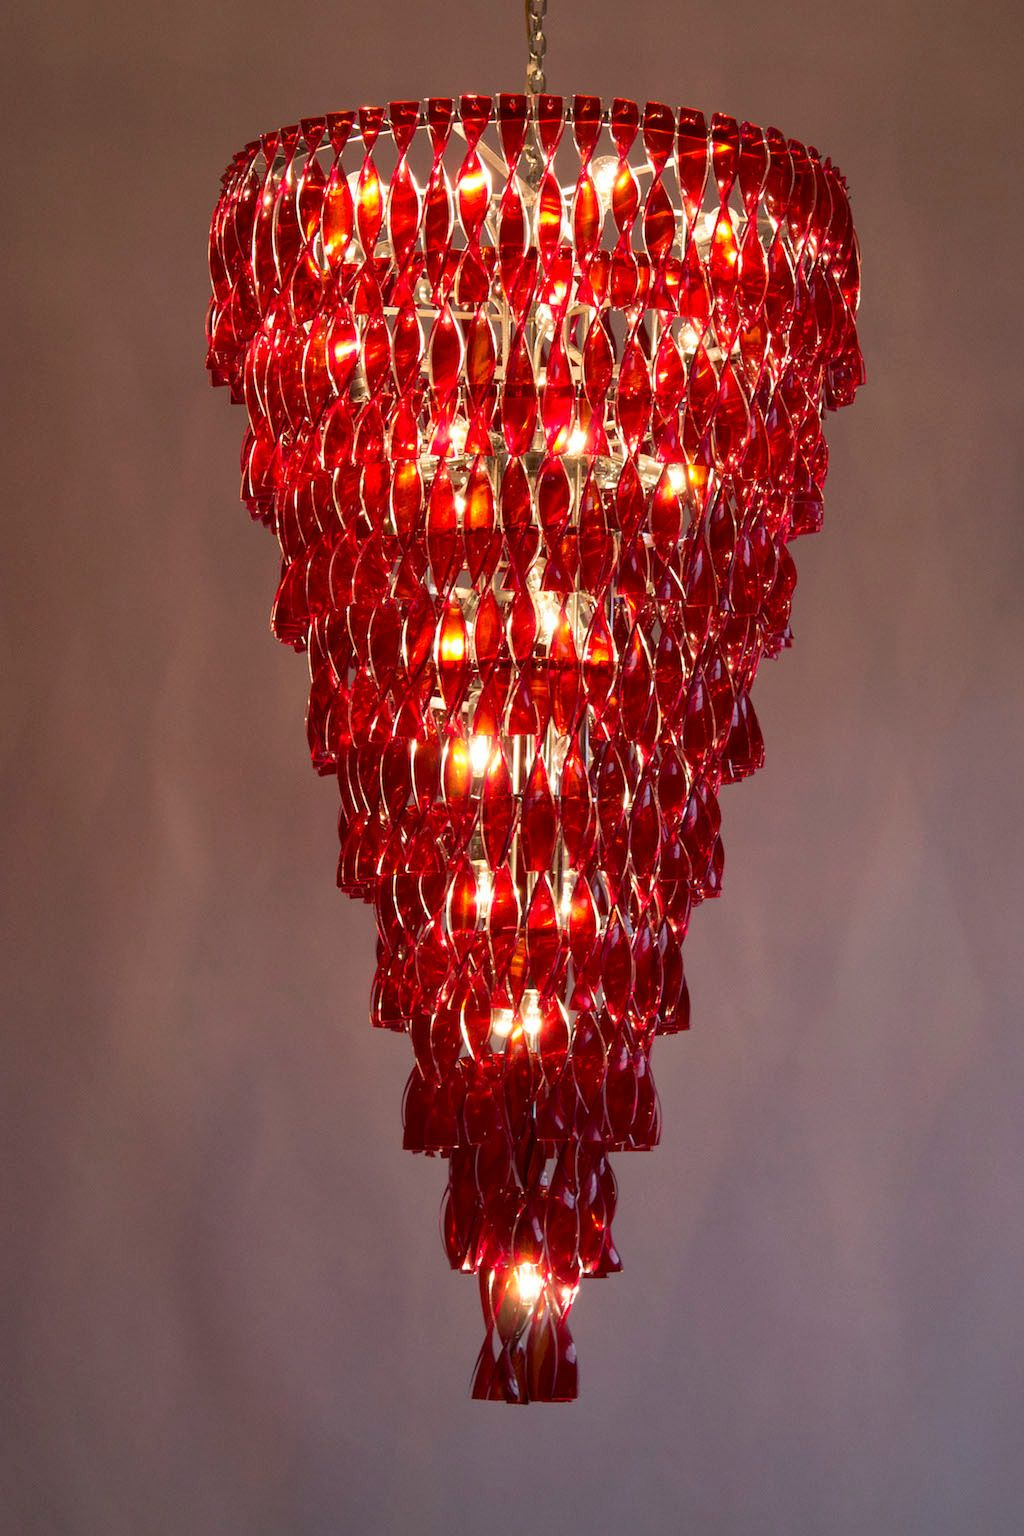 Italian Red Chandelier in Murano Glass, circa 1970s | Red chandelier, Murano glass, Crystal chandelier